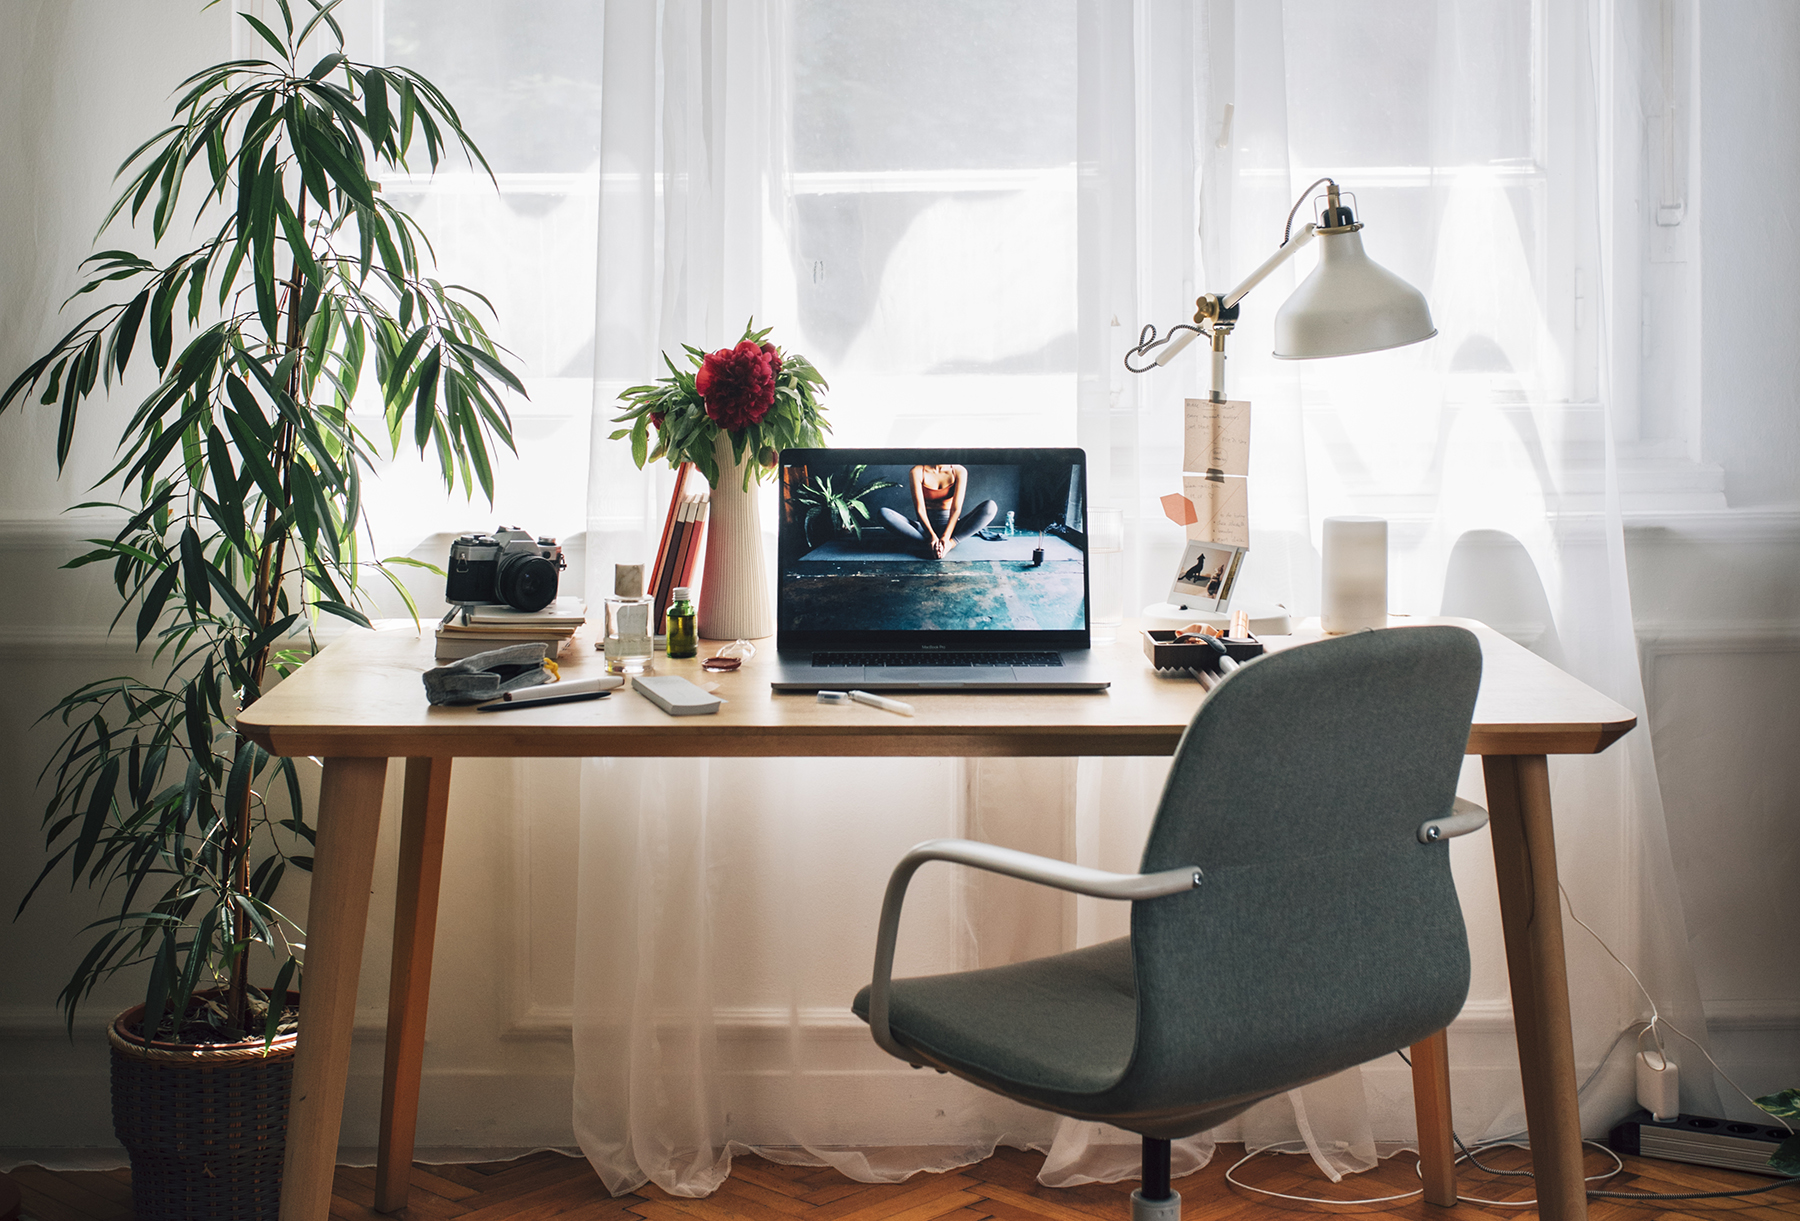 How Can We Protect Our Remote Working Environment from Cyber Attacks?